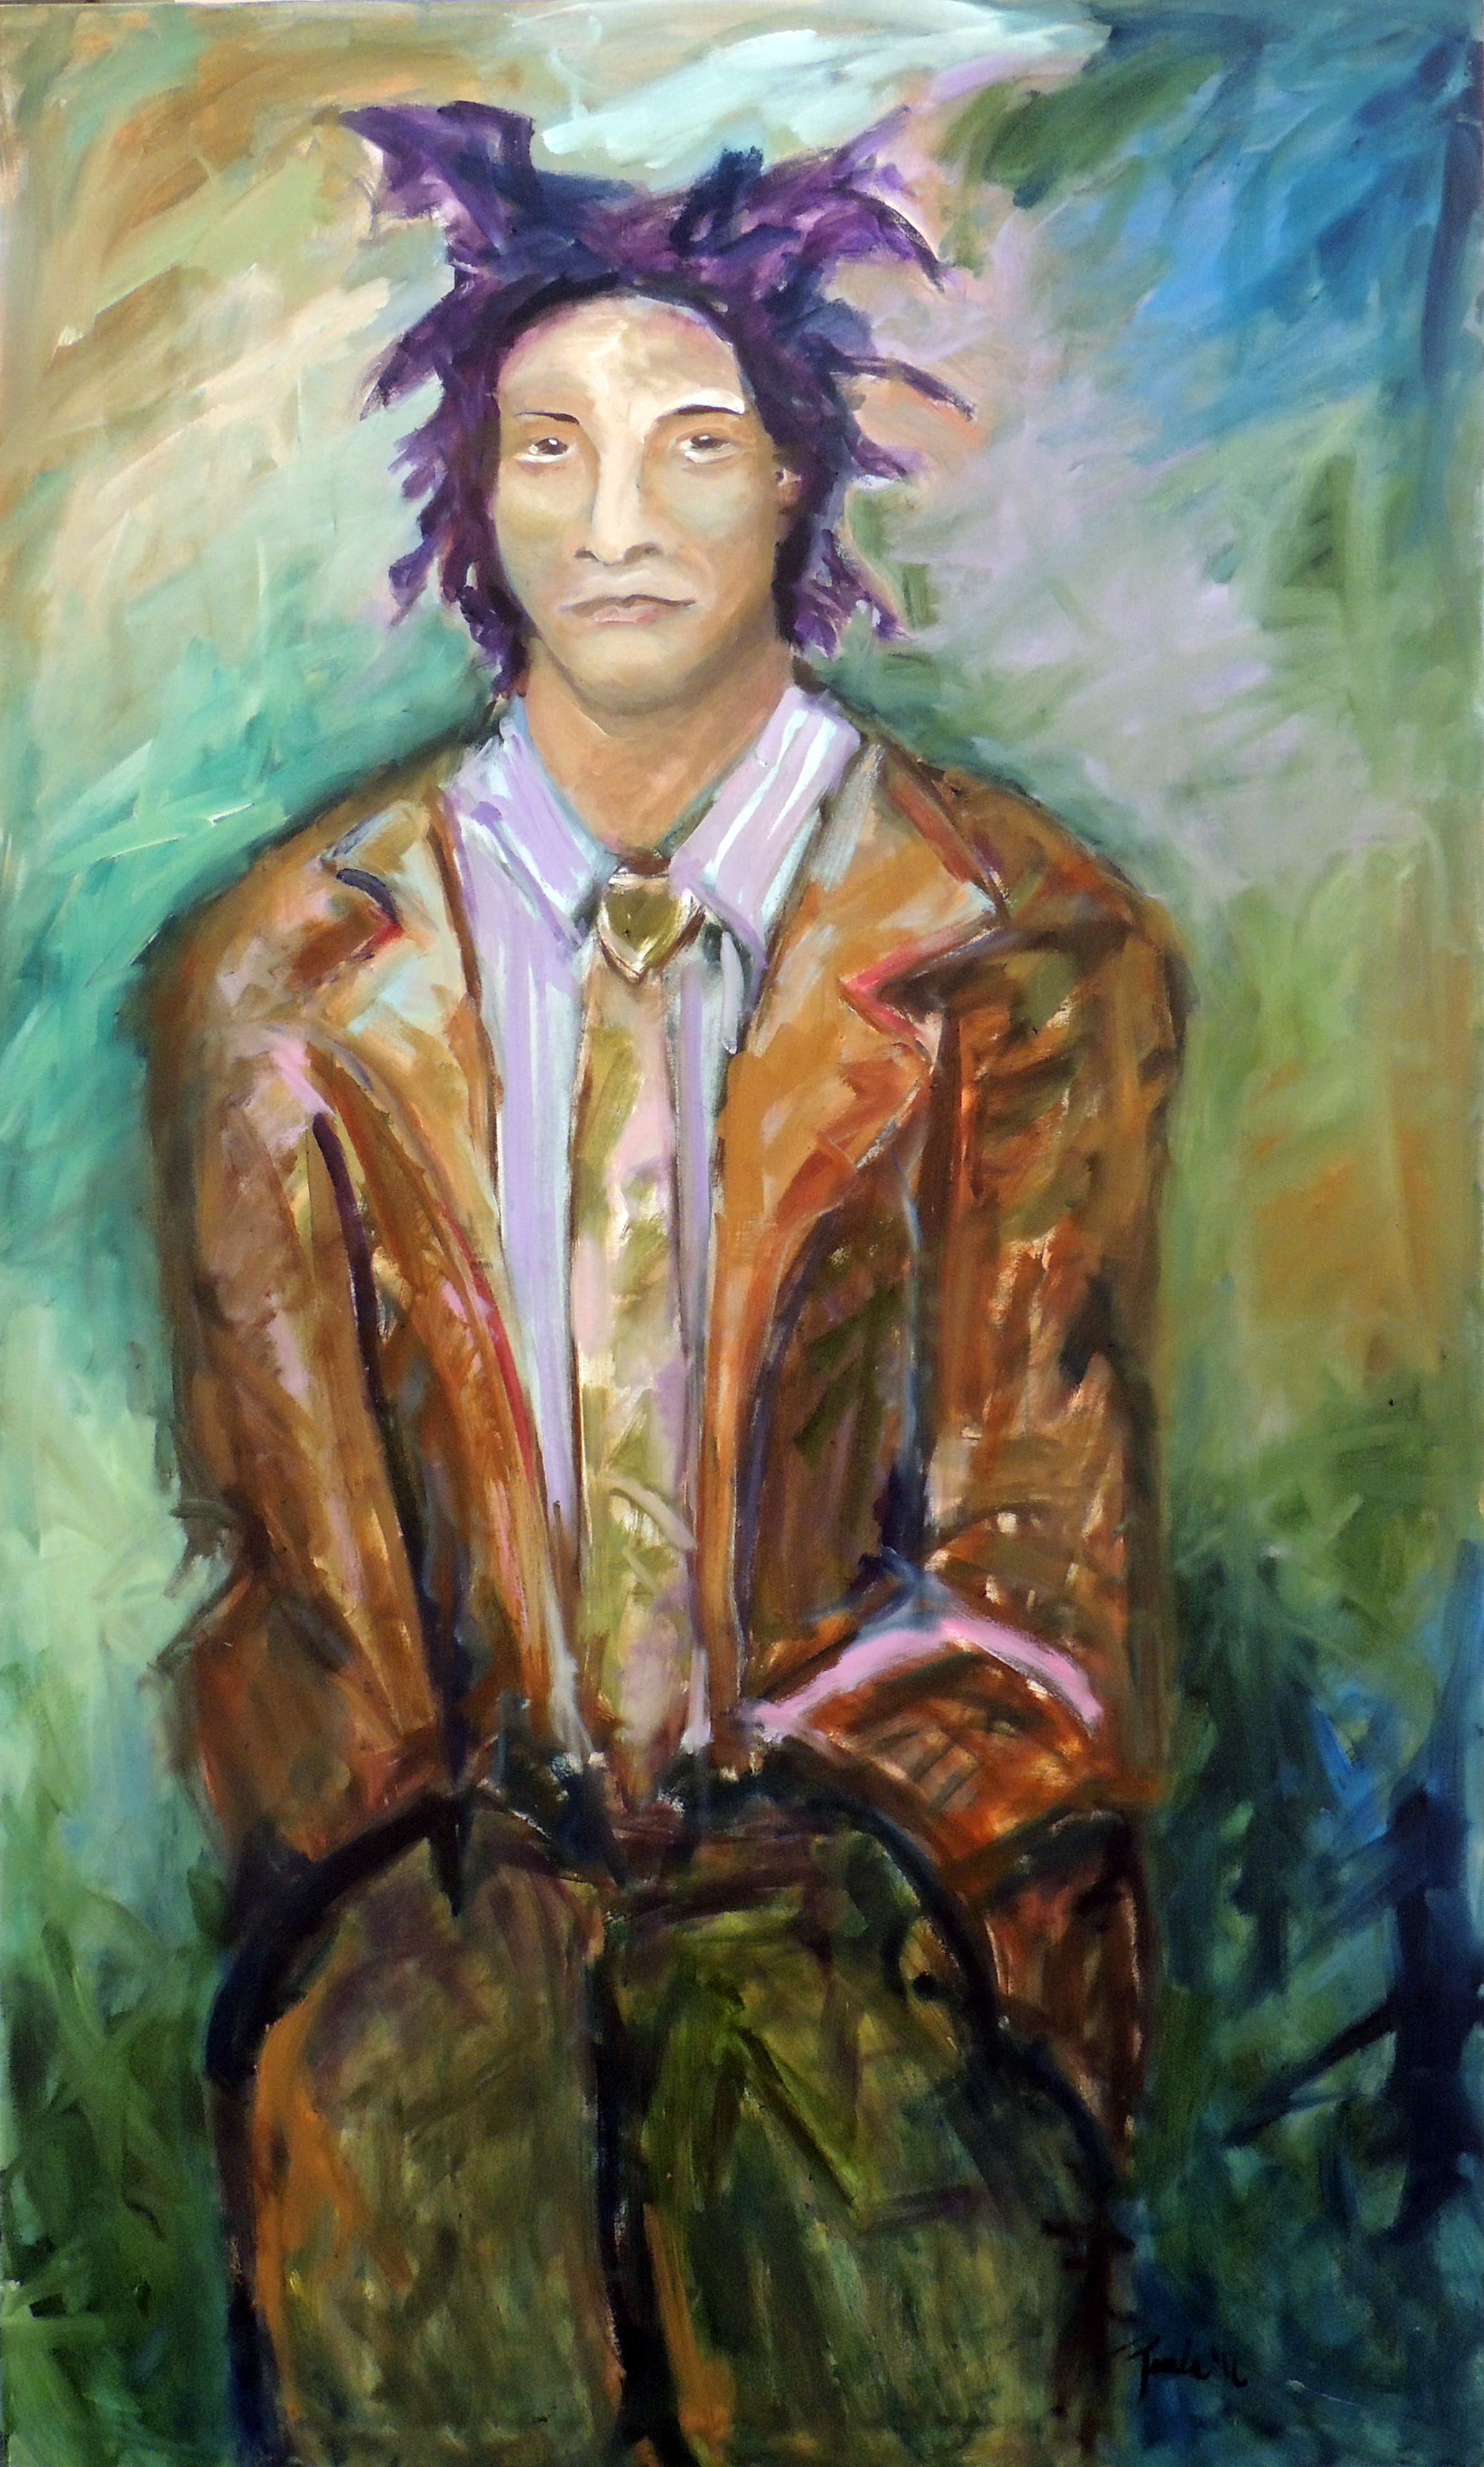 Paula Womacks | PORTRAIT OF AN ARTIST | Oil on Canvas